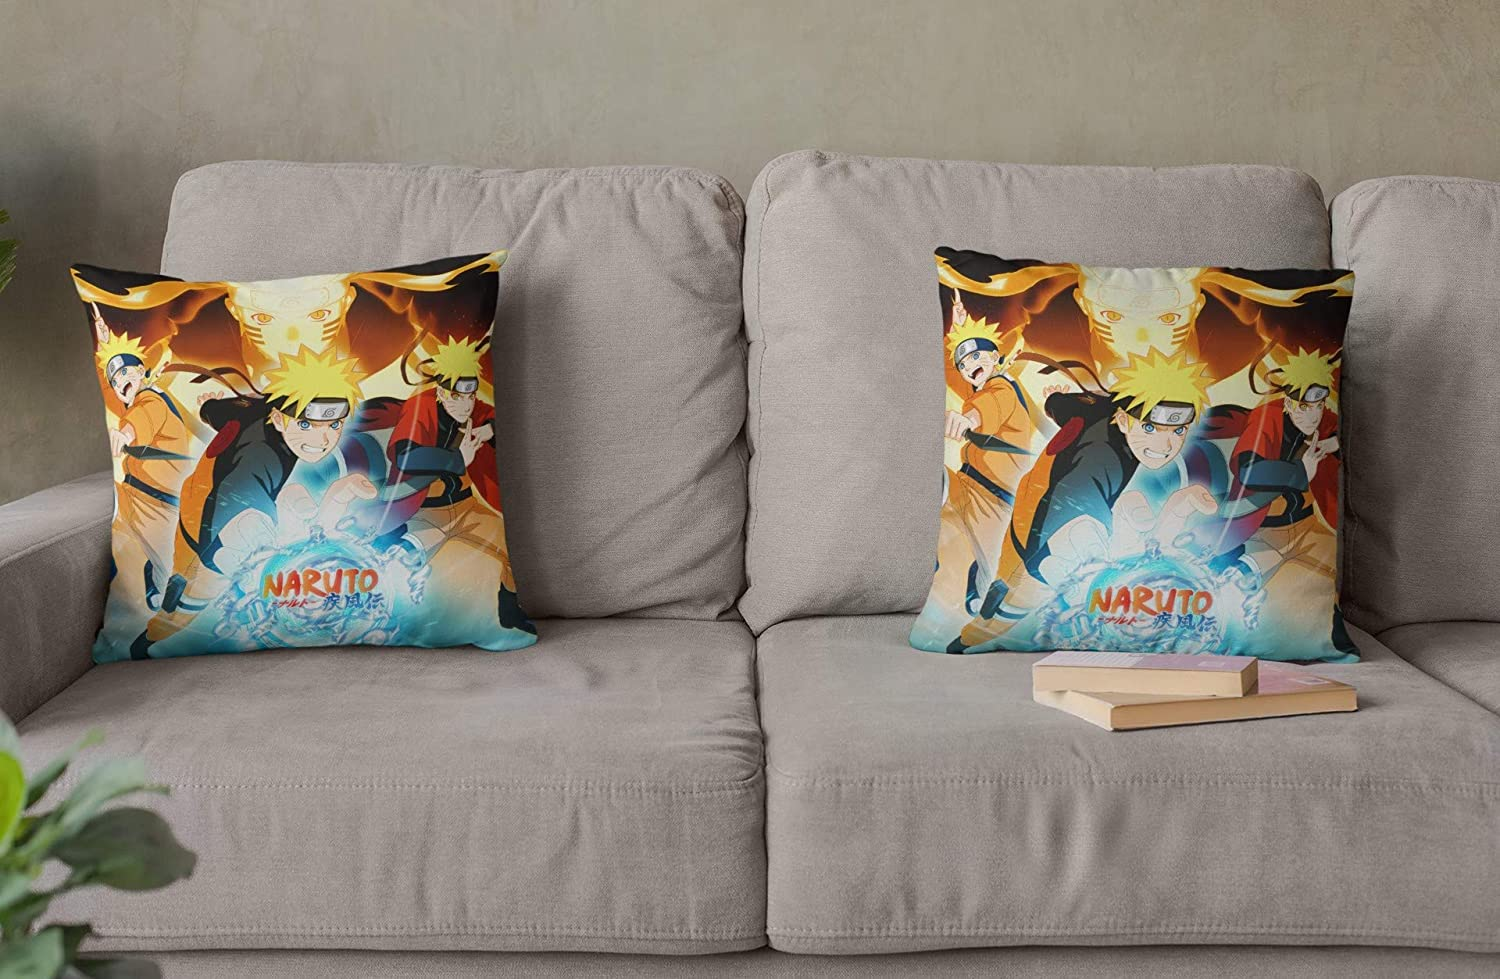 VASHU 2 Piece Naruto Square Throw Pillow Covers 18x18 inch Cushion Cases for Couch Sofa Living Room Decorative 45 x 45cm